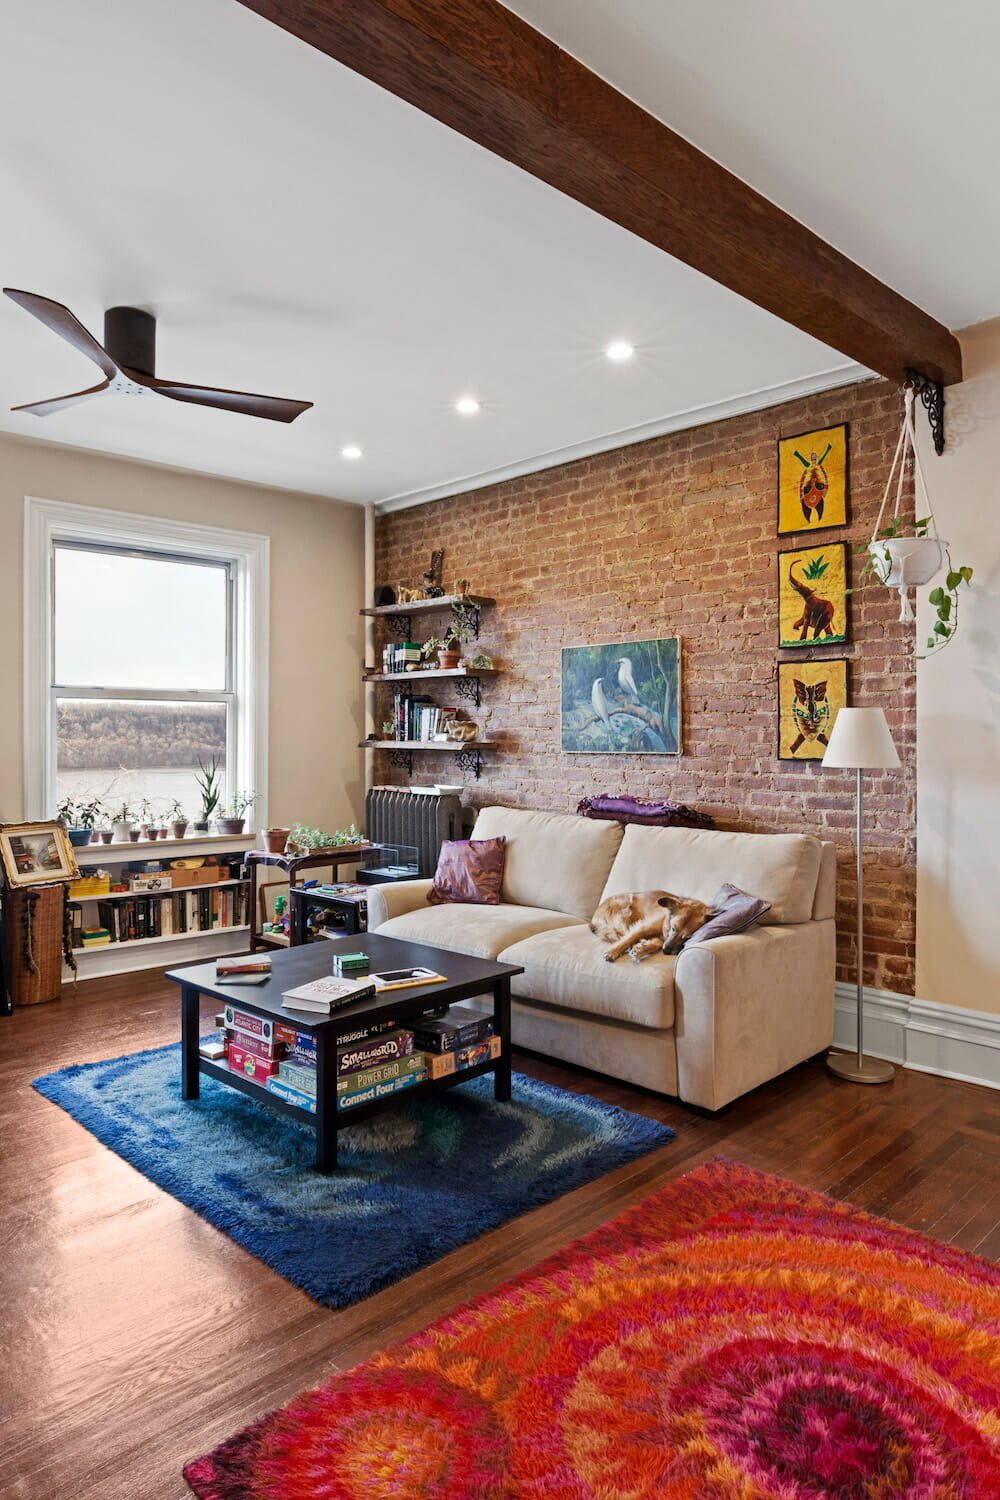 exposed beams, home renovation, design, construction, open living